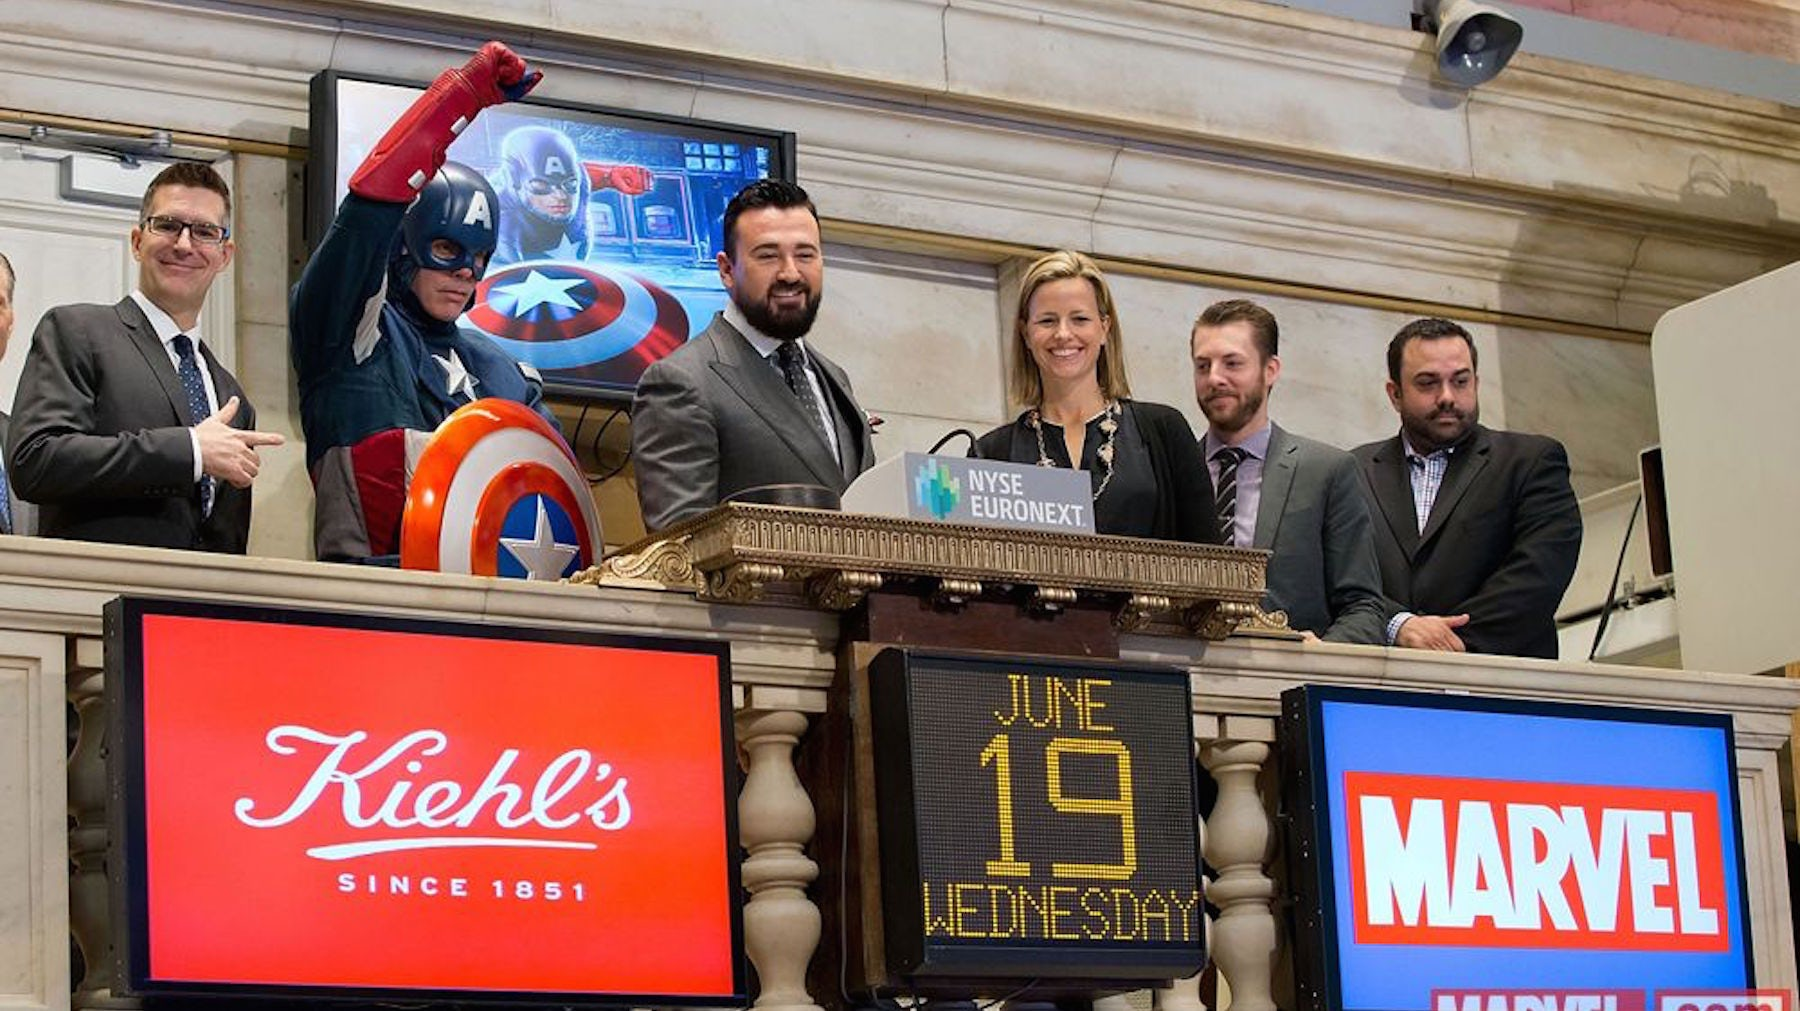 Kiehl's partner's with Marvel's Captain America for an advertising campaign | Source: Kiehl's